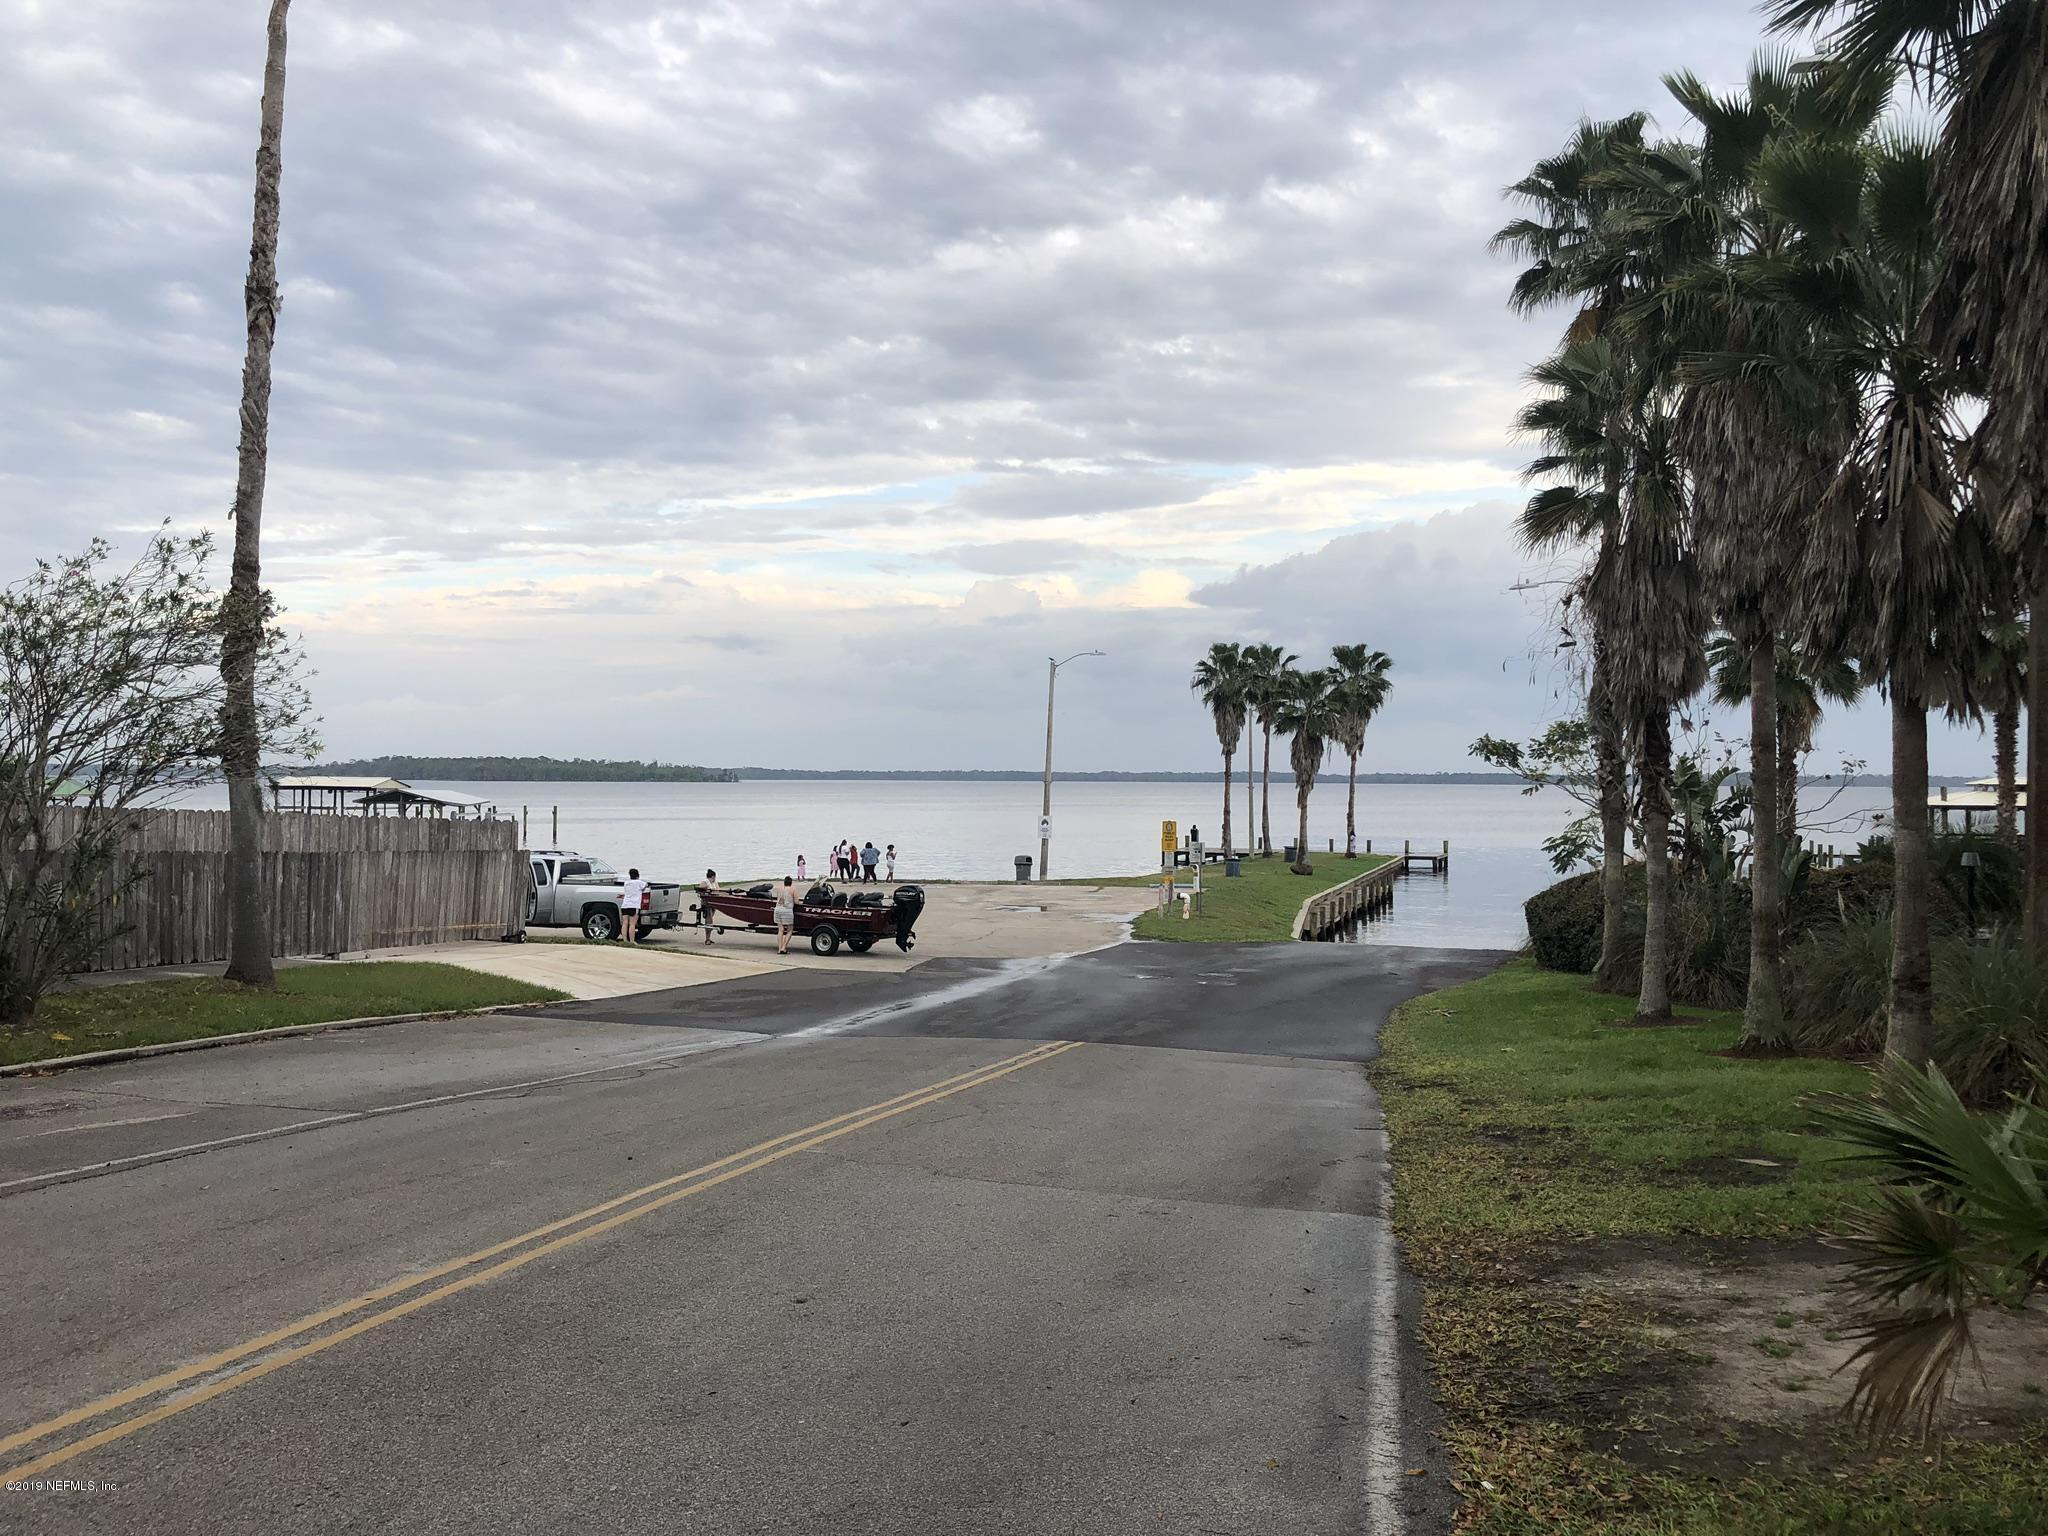 0 HOLLY, CRESCENT CITY, FLORIDA 32112, ,Vacant land,For sale,HOLLY,1041699